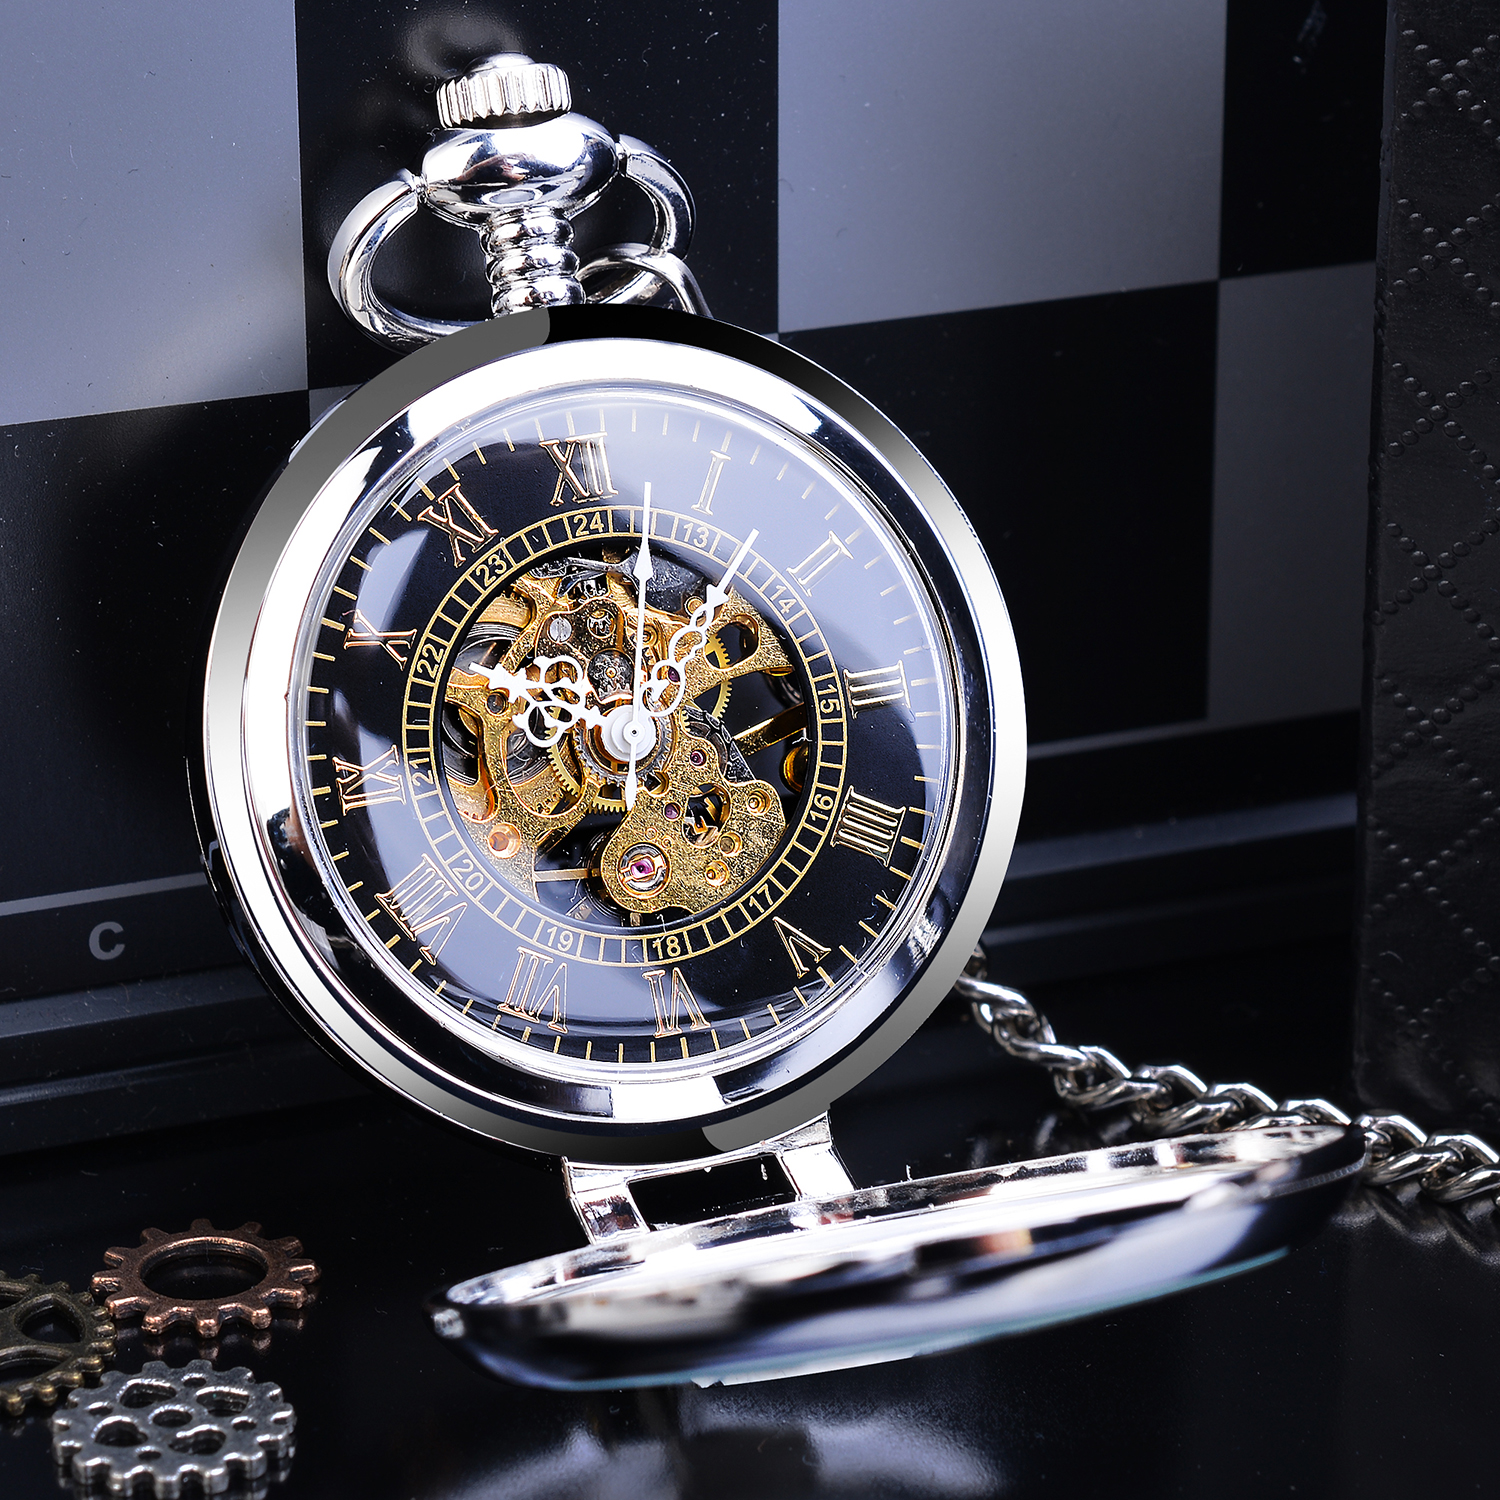 Silver Steampunk Stand Case New Design Clock Mechanical Men Pocket Watch Transparent Skeleton Back Roman Numerals With FOB Chain